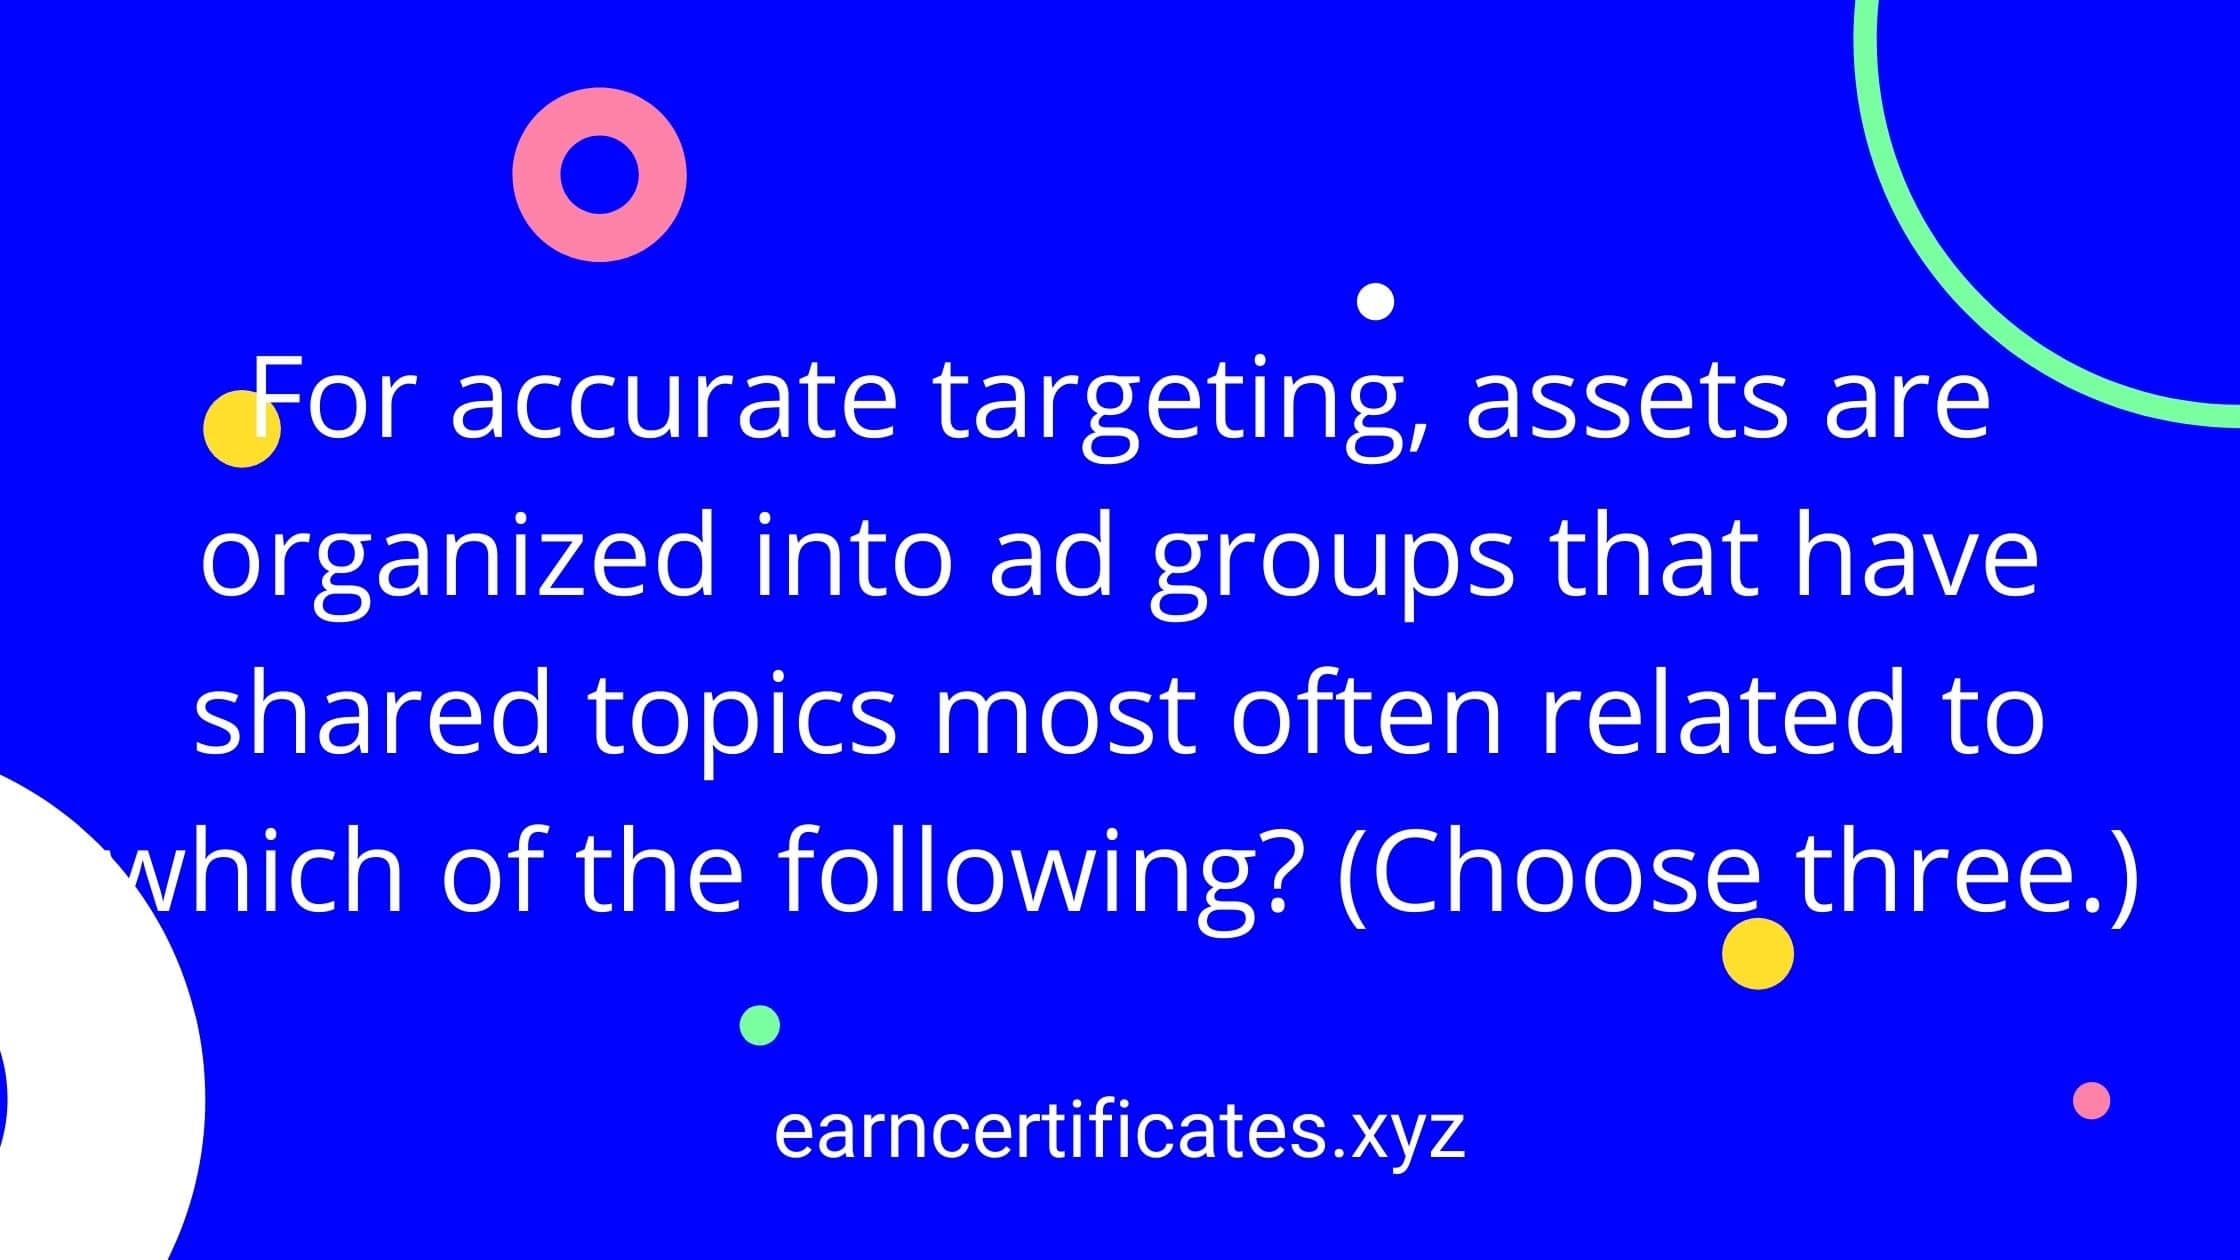 For accurate targeting, assets are organized into ad groups that have shared topics most often related to which of the following? (Choose three.)